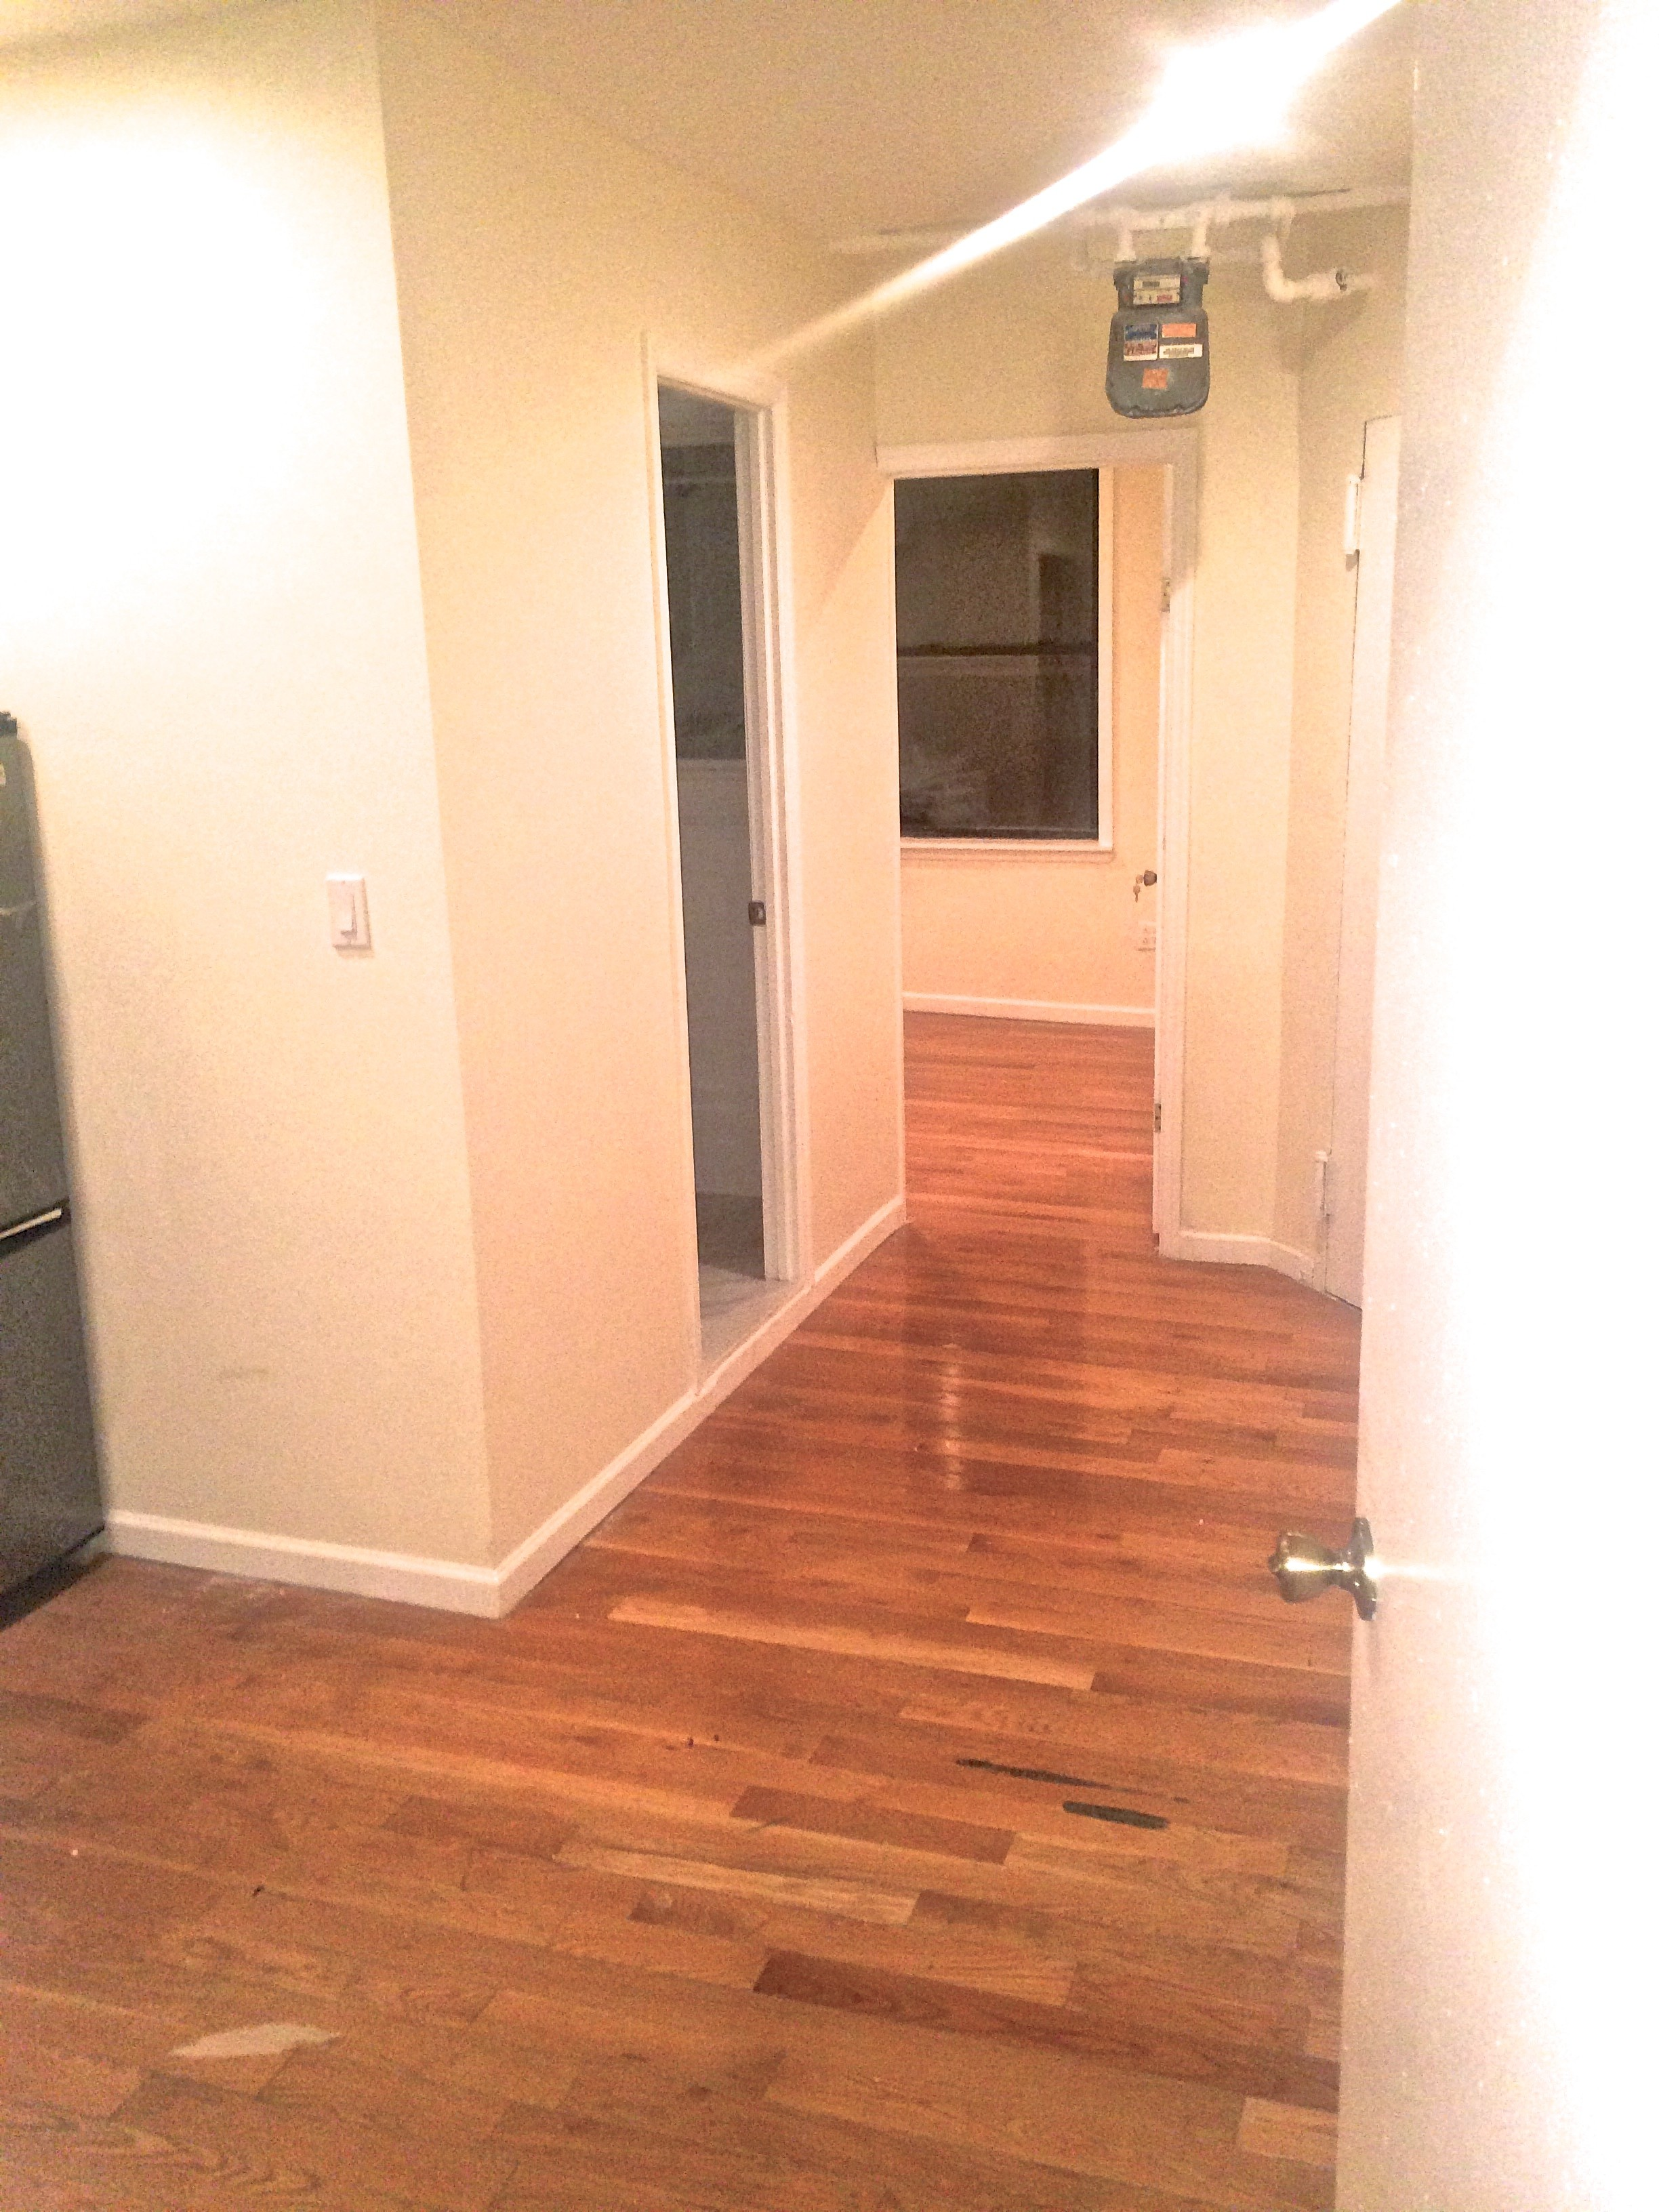 1st Ave East 91st St New York Ny 10128 2 Bedroom